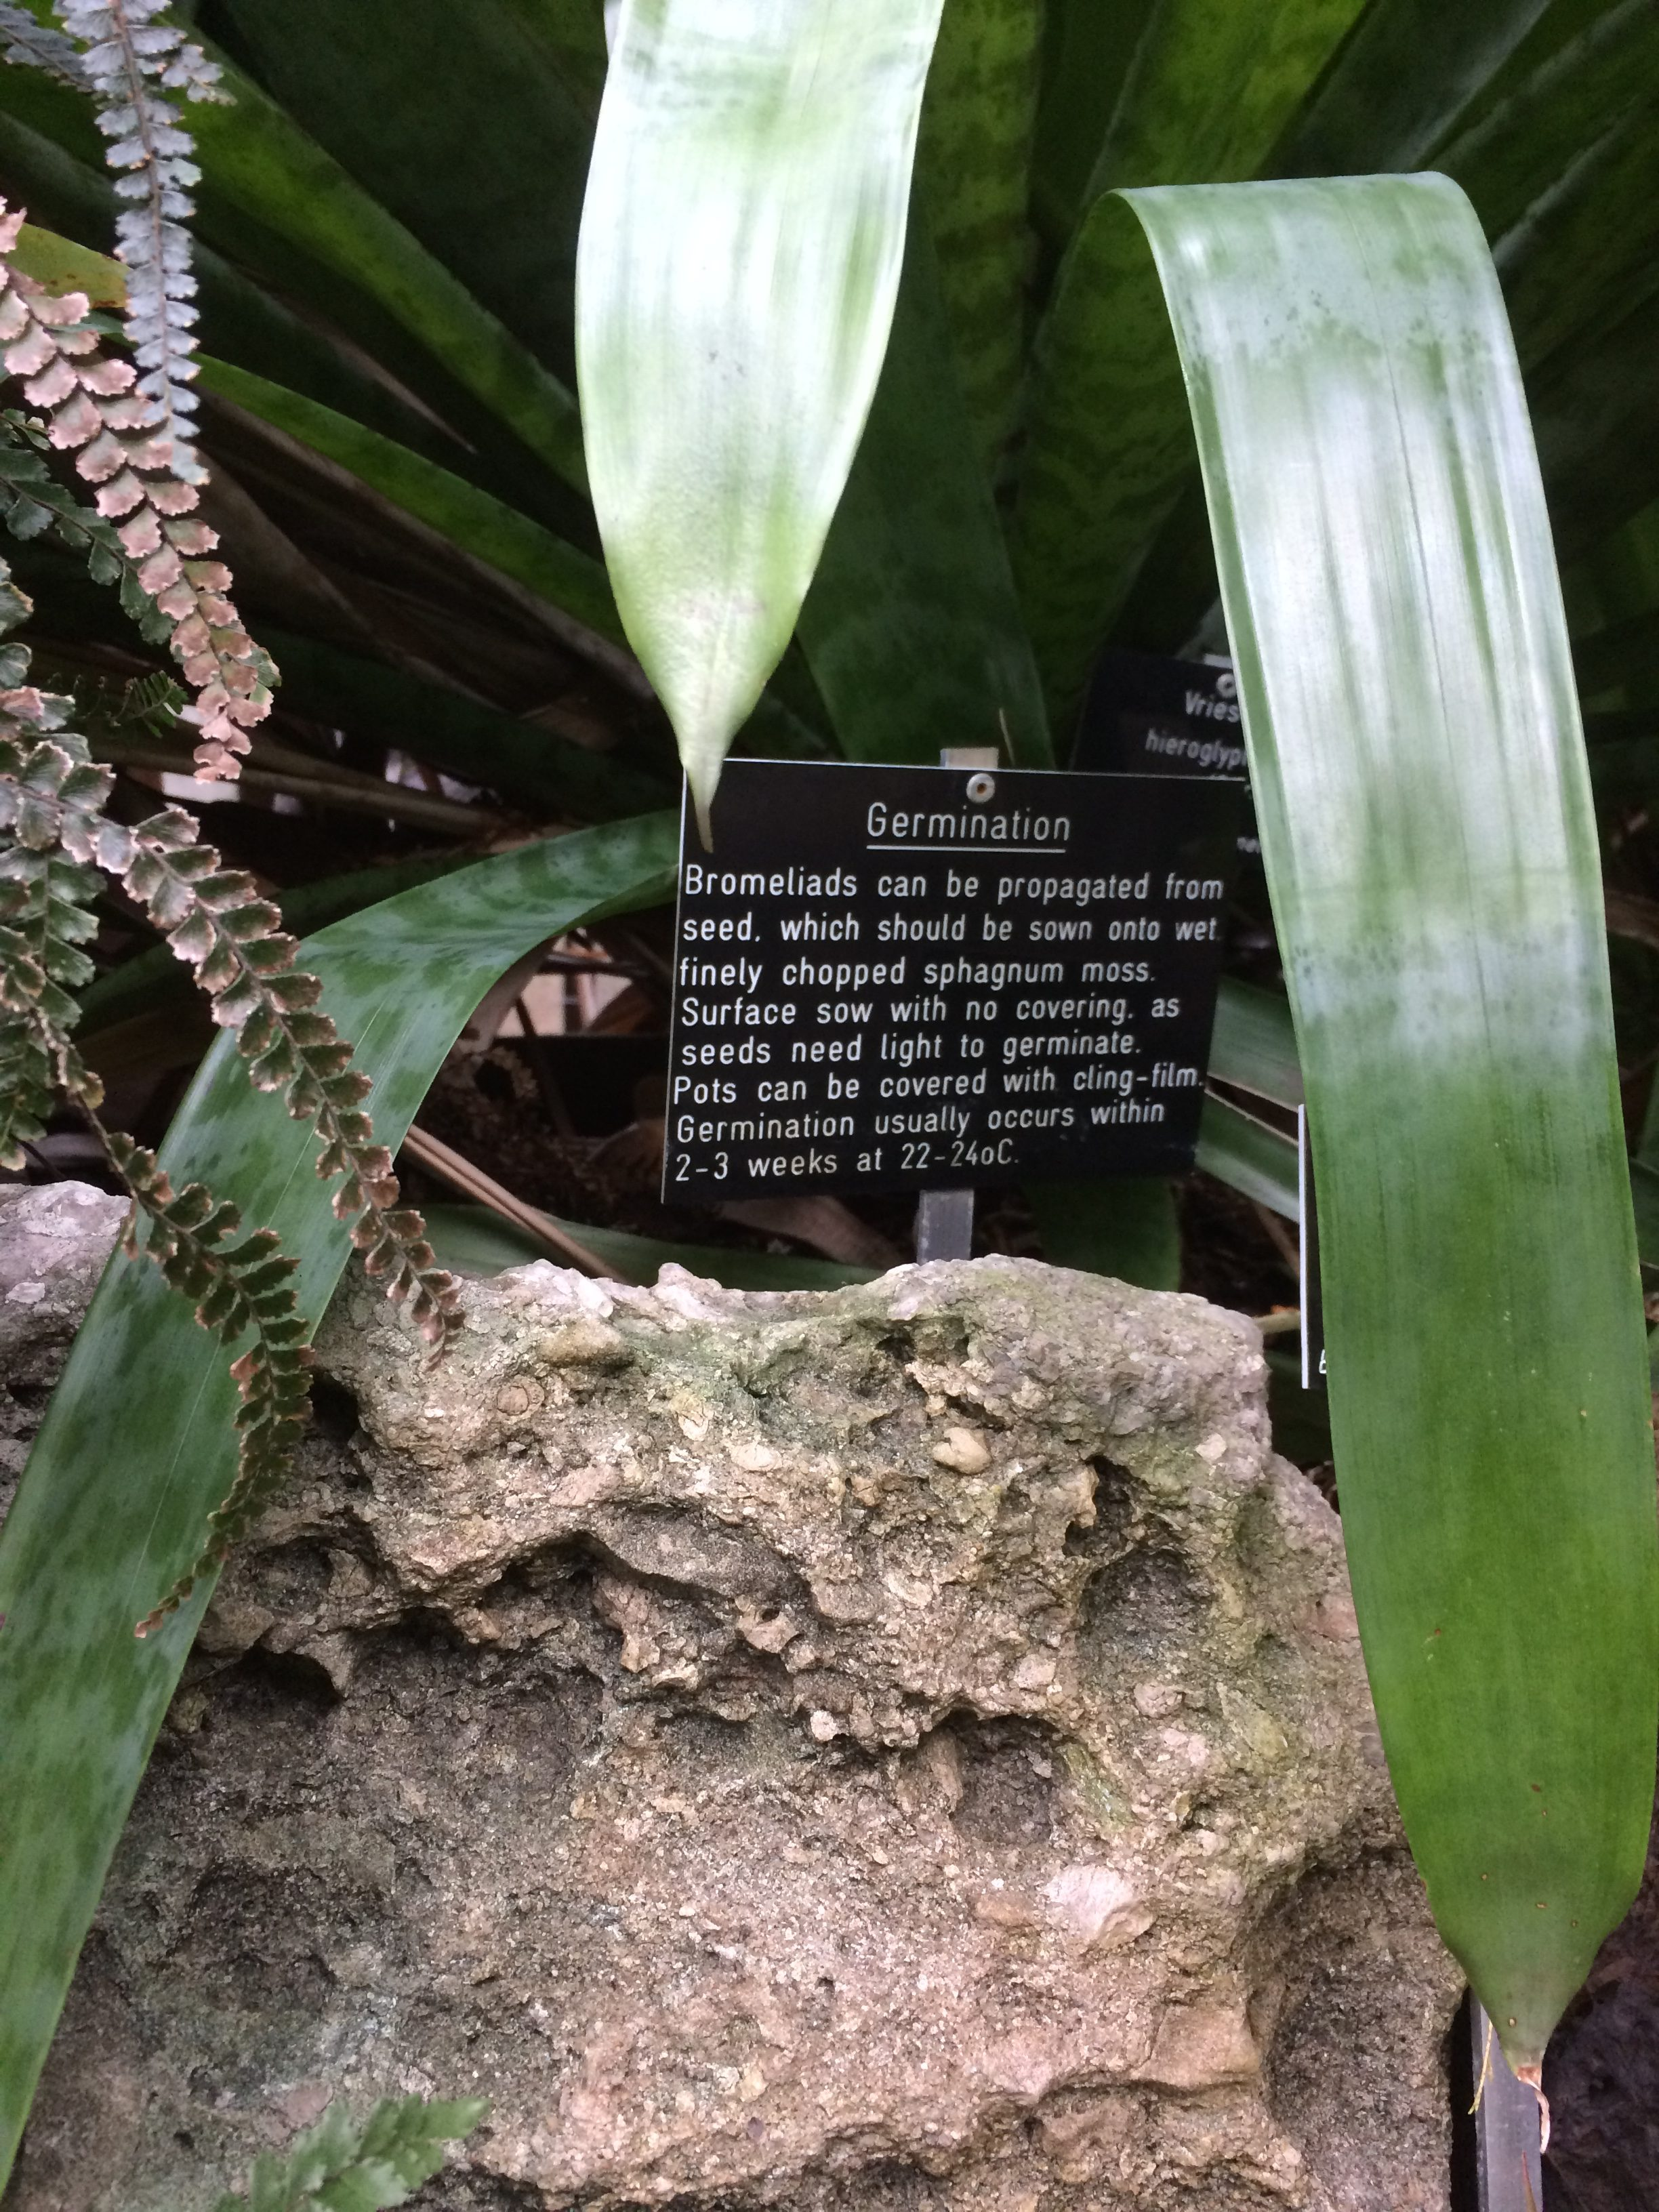 Bromeliad germination advice from Glasgow Botanic Gardens